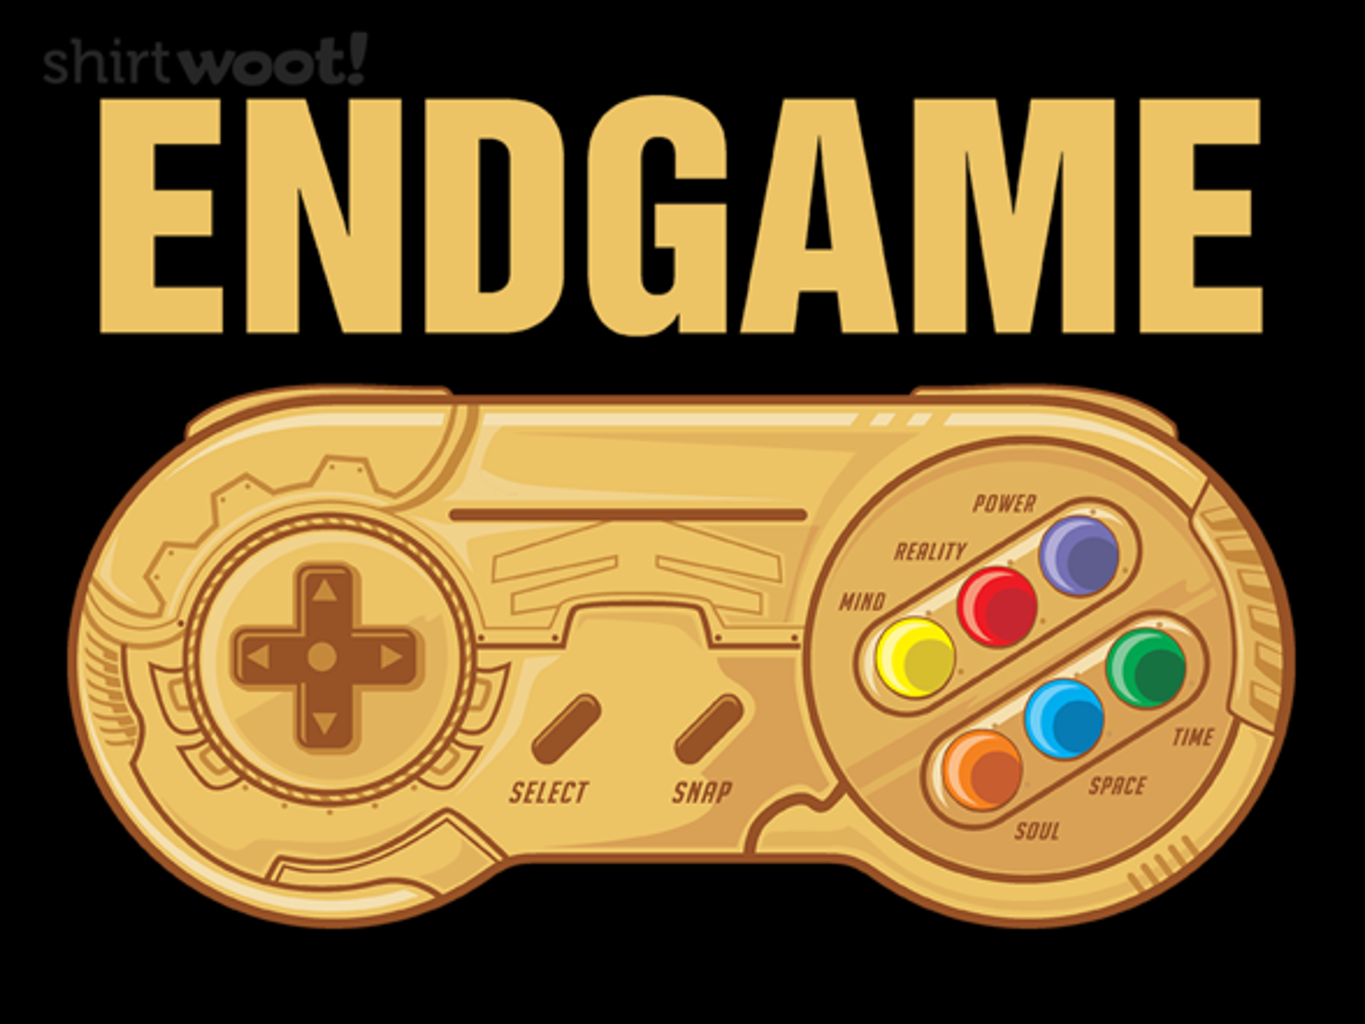 Woot!: The Infinity Controller